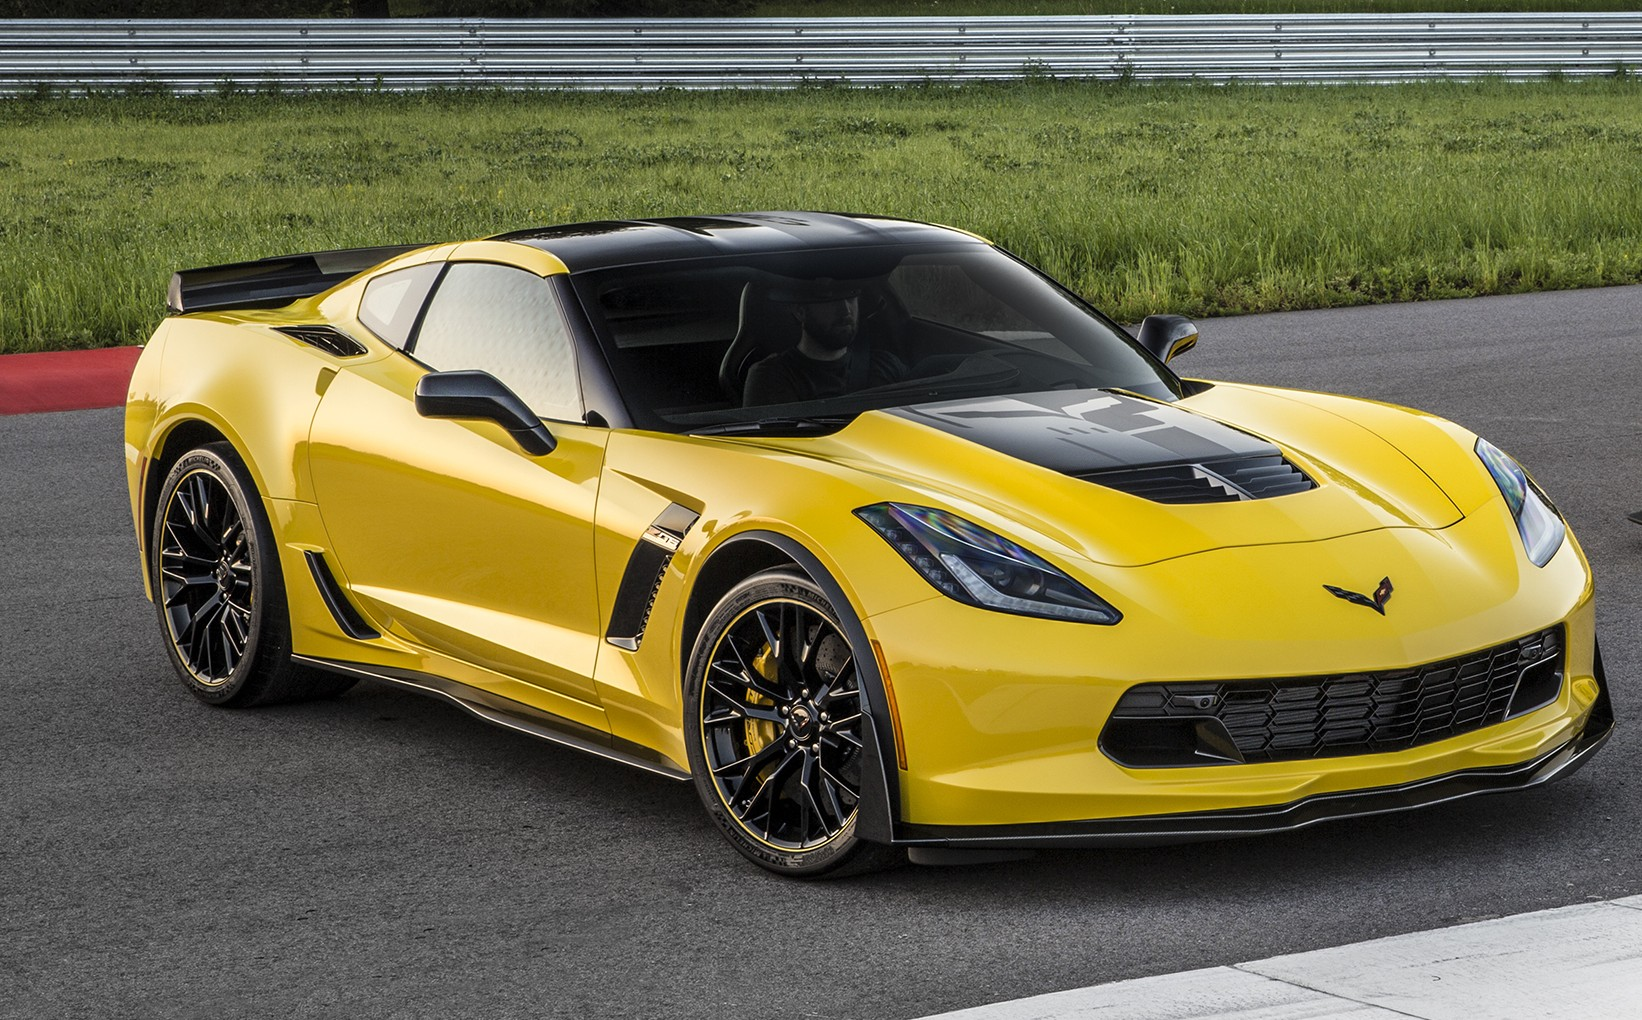 Corvette Zo7 >> CHEVROLET INTRODUCES 2016 CORVETTE Z06 C7.R EDITION - myAutoWorld.com